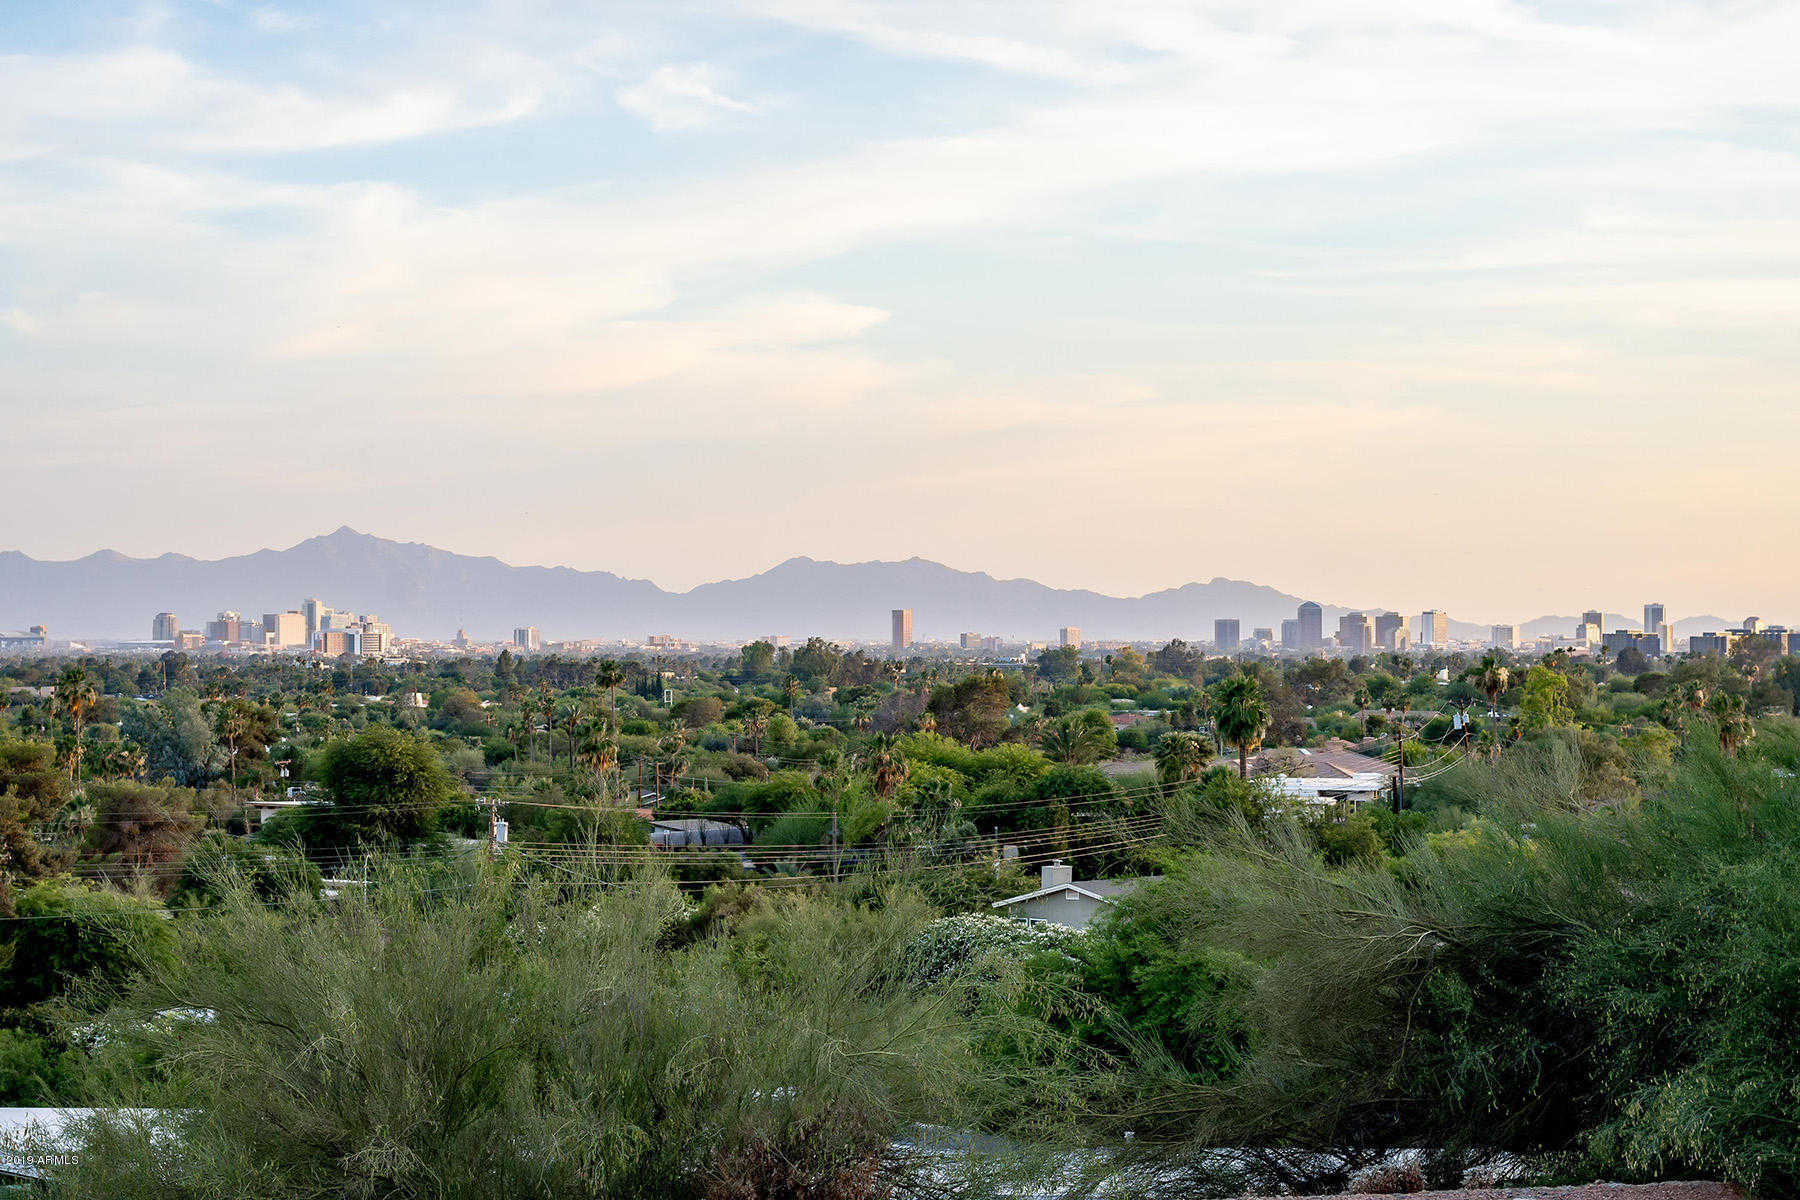 $1,200,000 - 5Br/4Ba - Home for Sale in Camelback Foothills 2, Paradise Valley